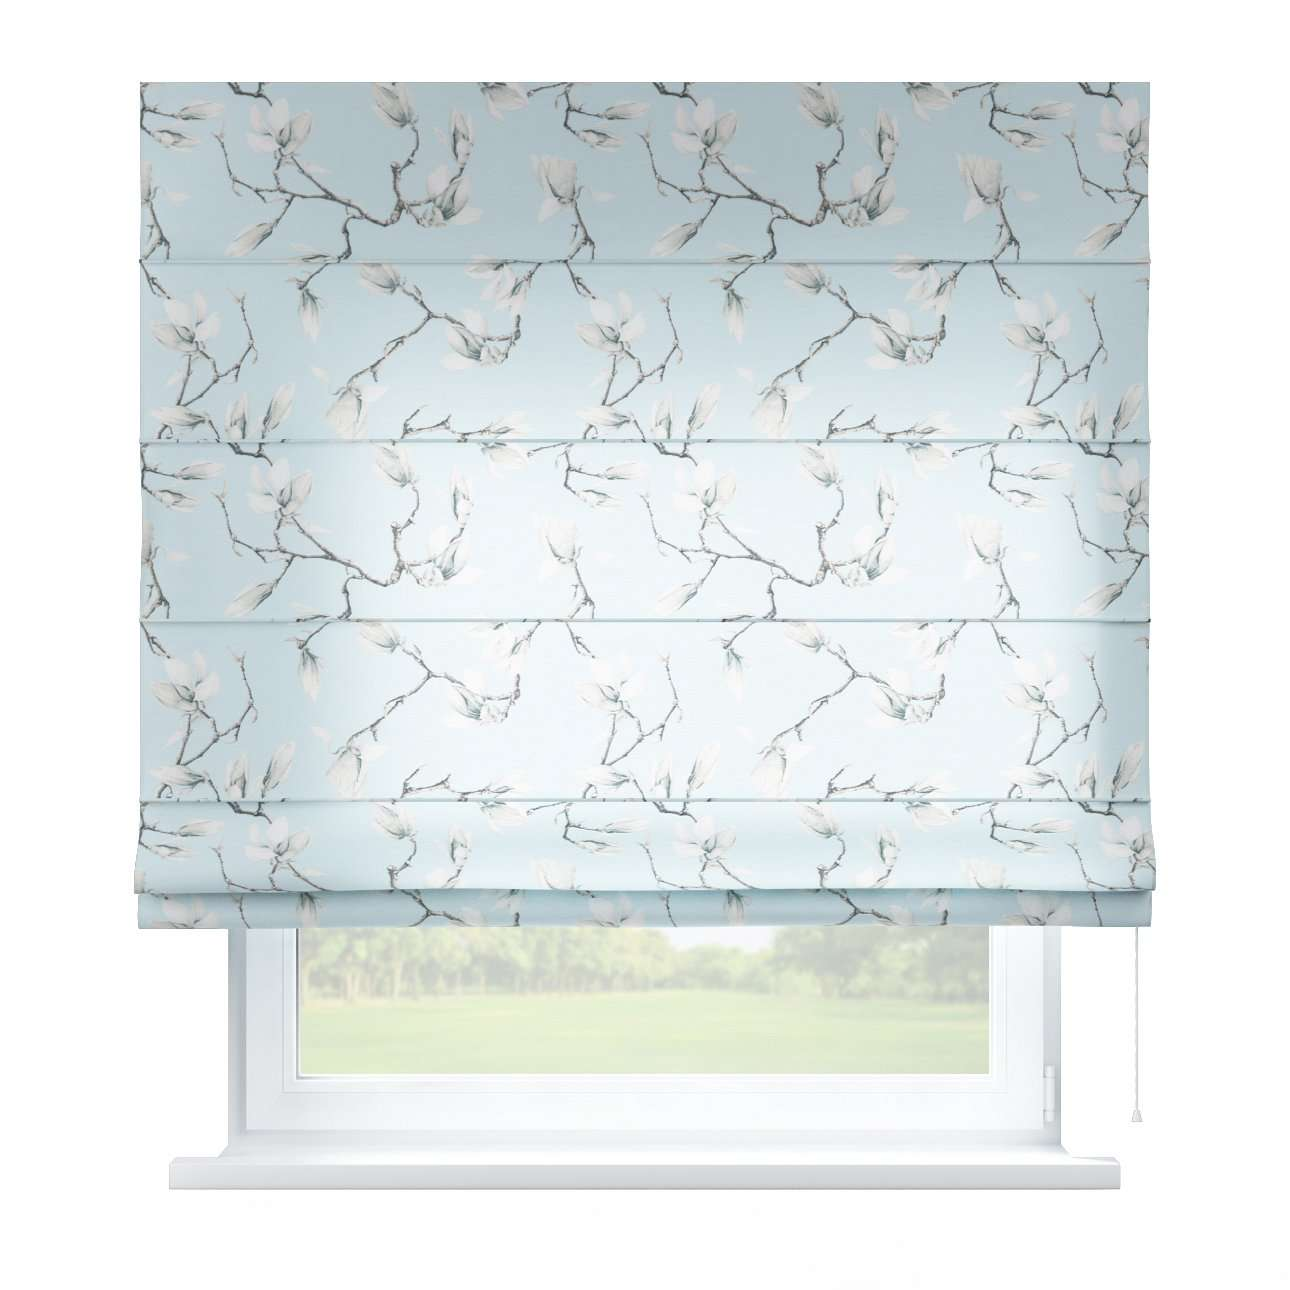 Capri roman blind 80 x 170 cm (31.5 x 67 inch) in collection Flowers, fabric: 311-14